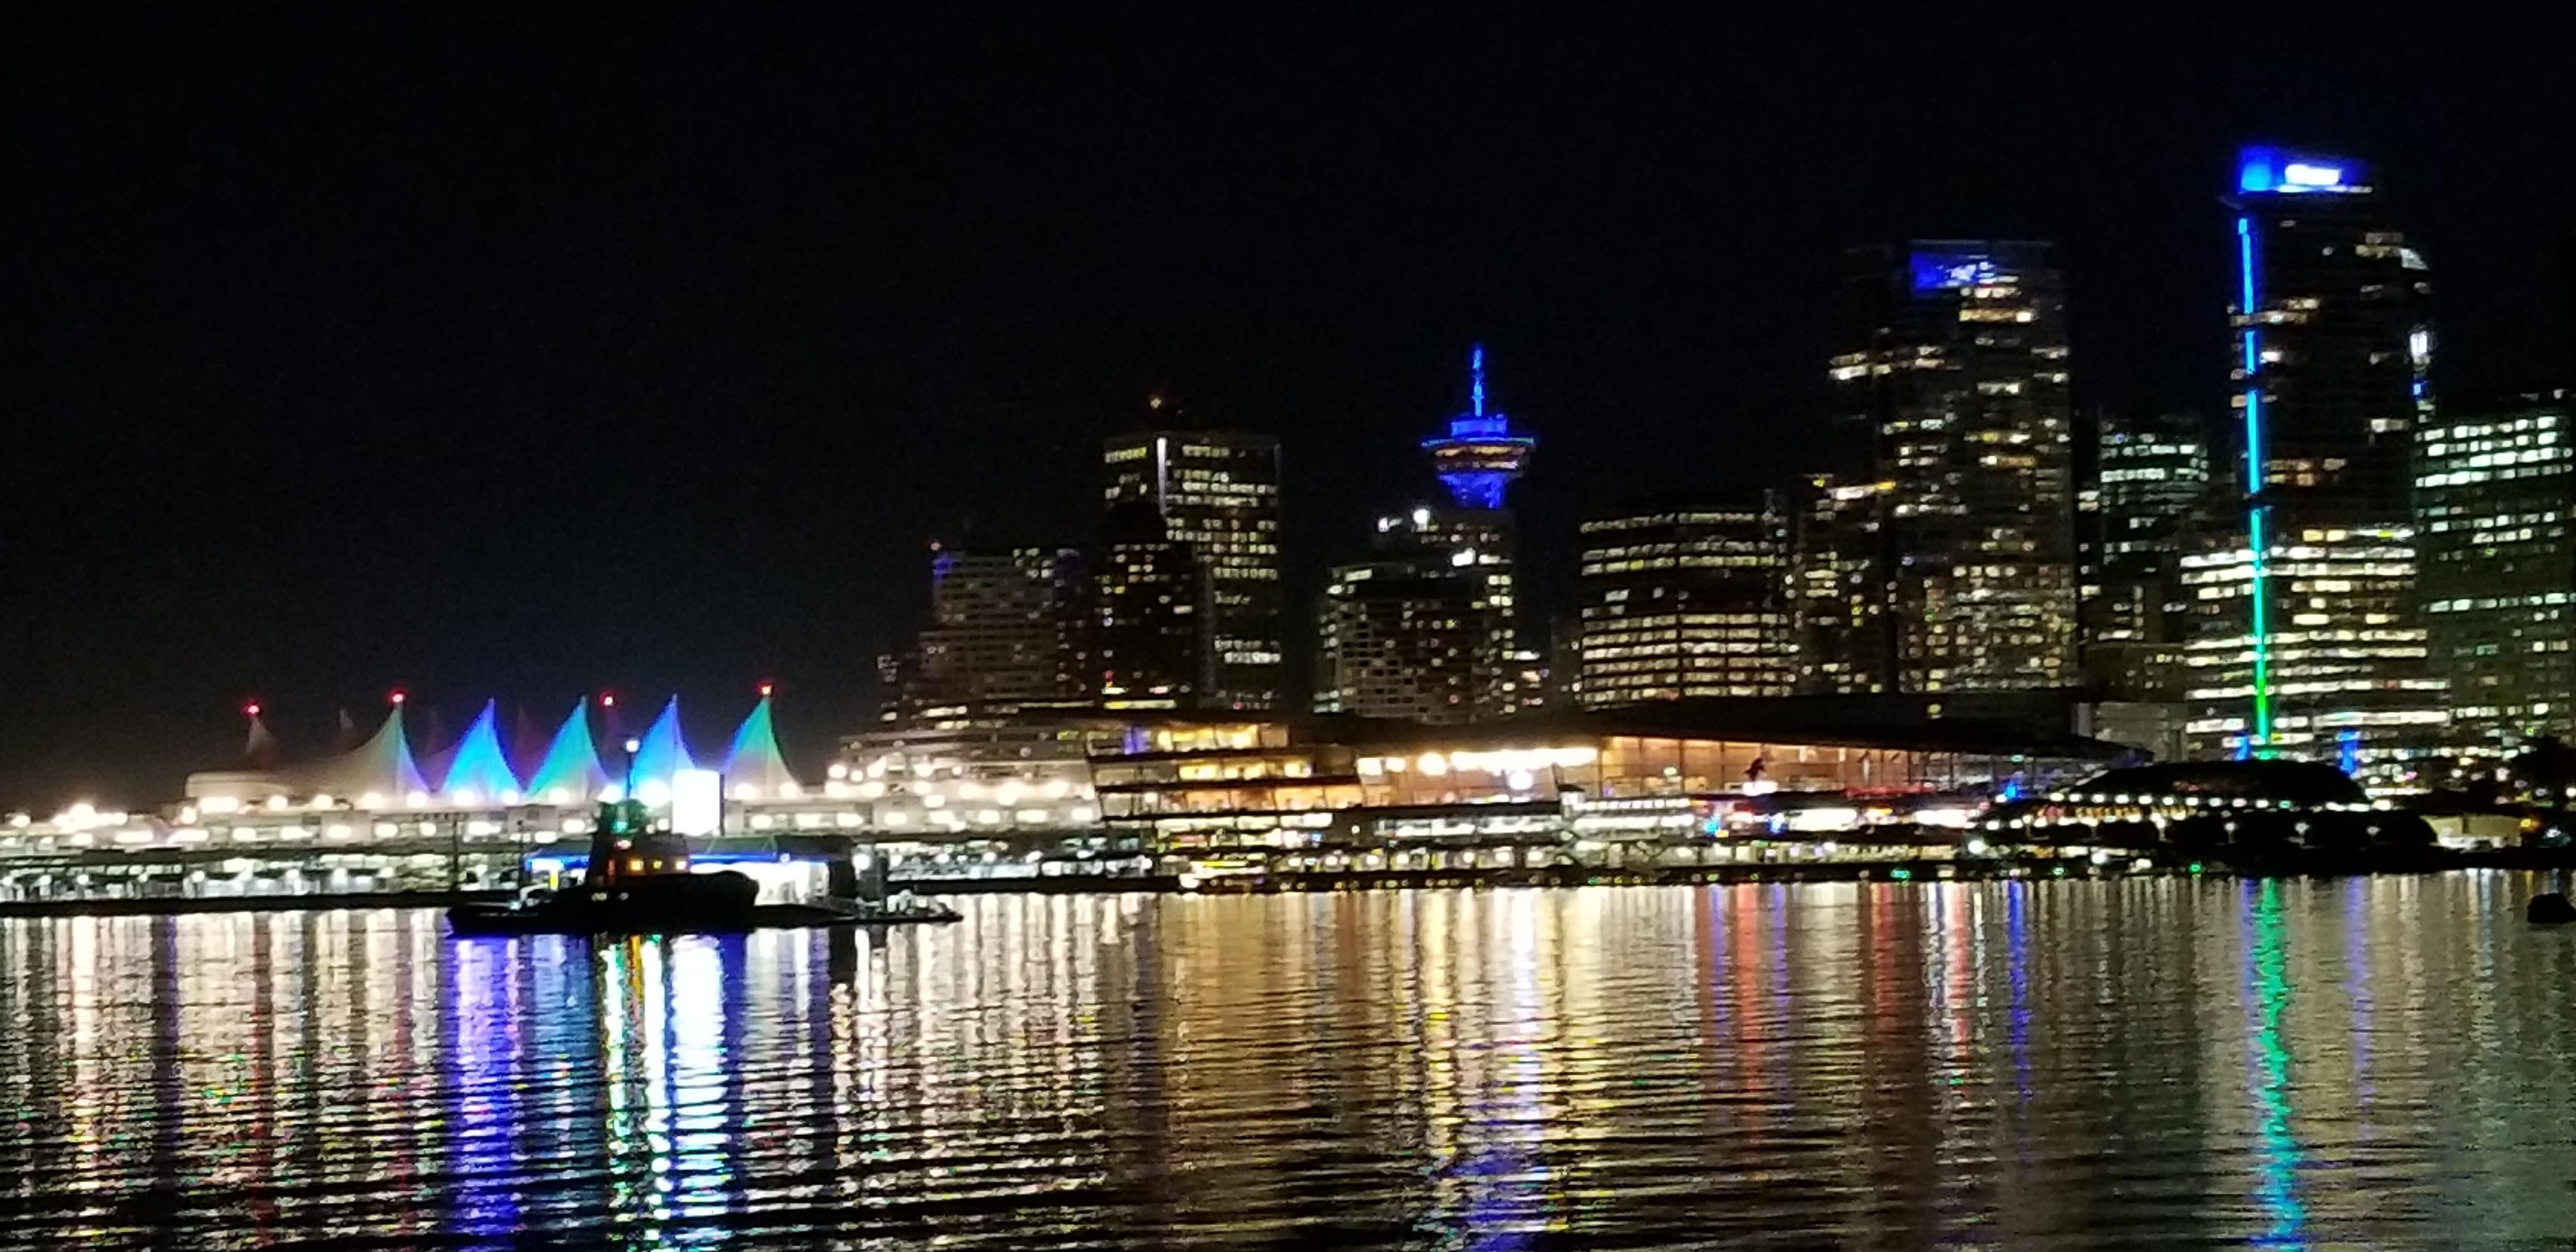 Canada Place Waste Reduction Week Lighting